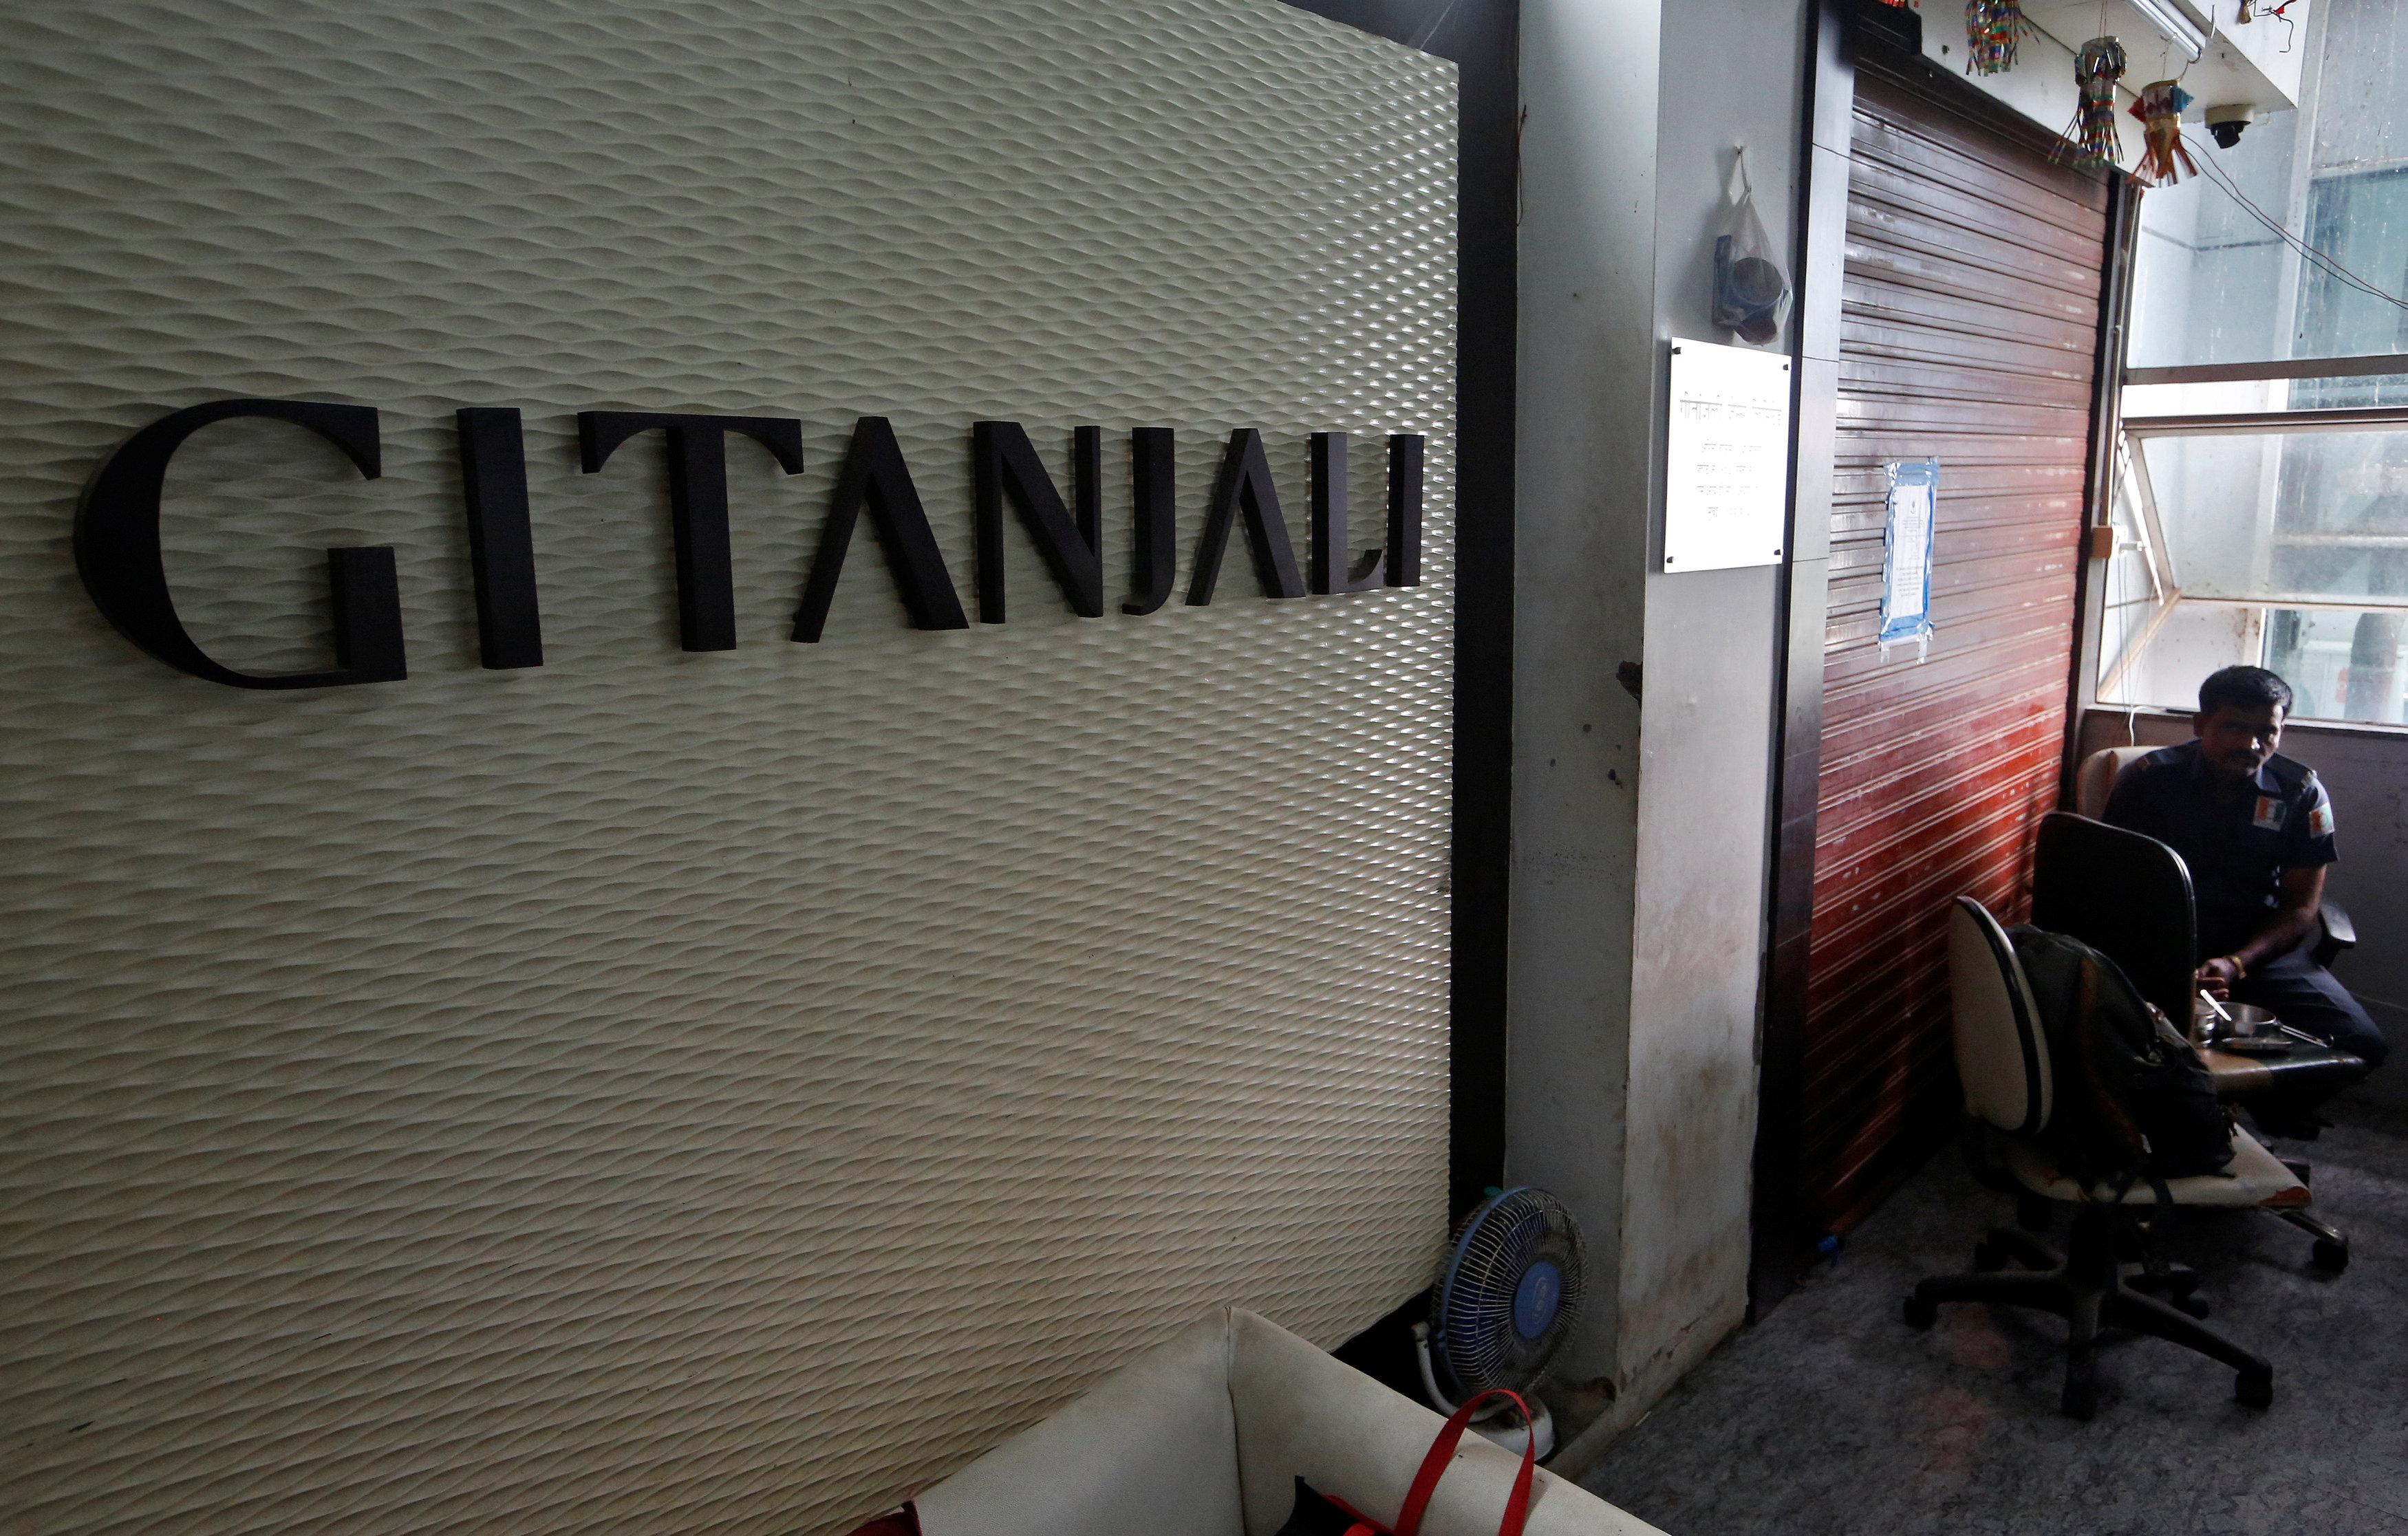 A security guard sits beside a sealed office of Gitanjali jewellers in Mumbai, India, July 23, 2018. Francis Mascarenhas